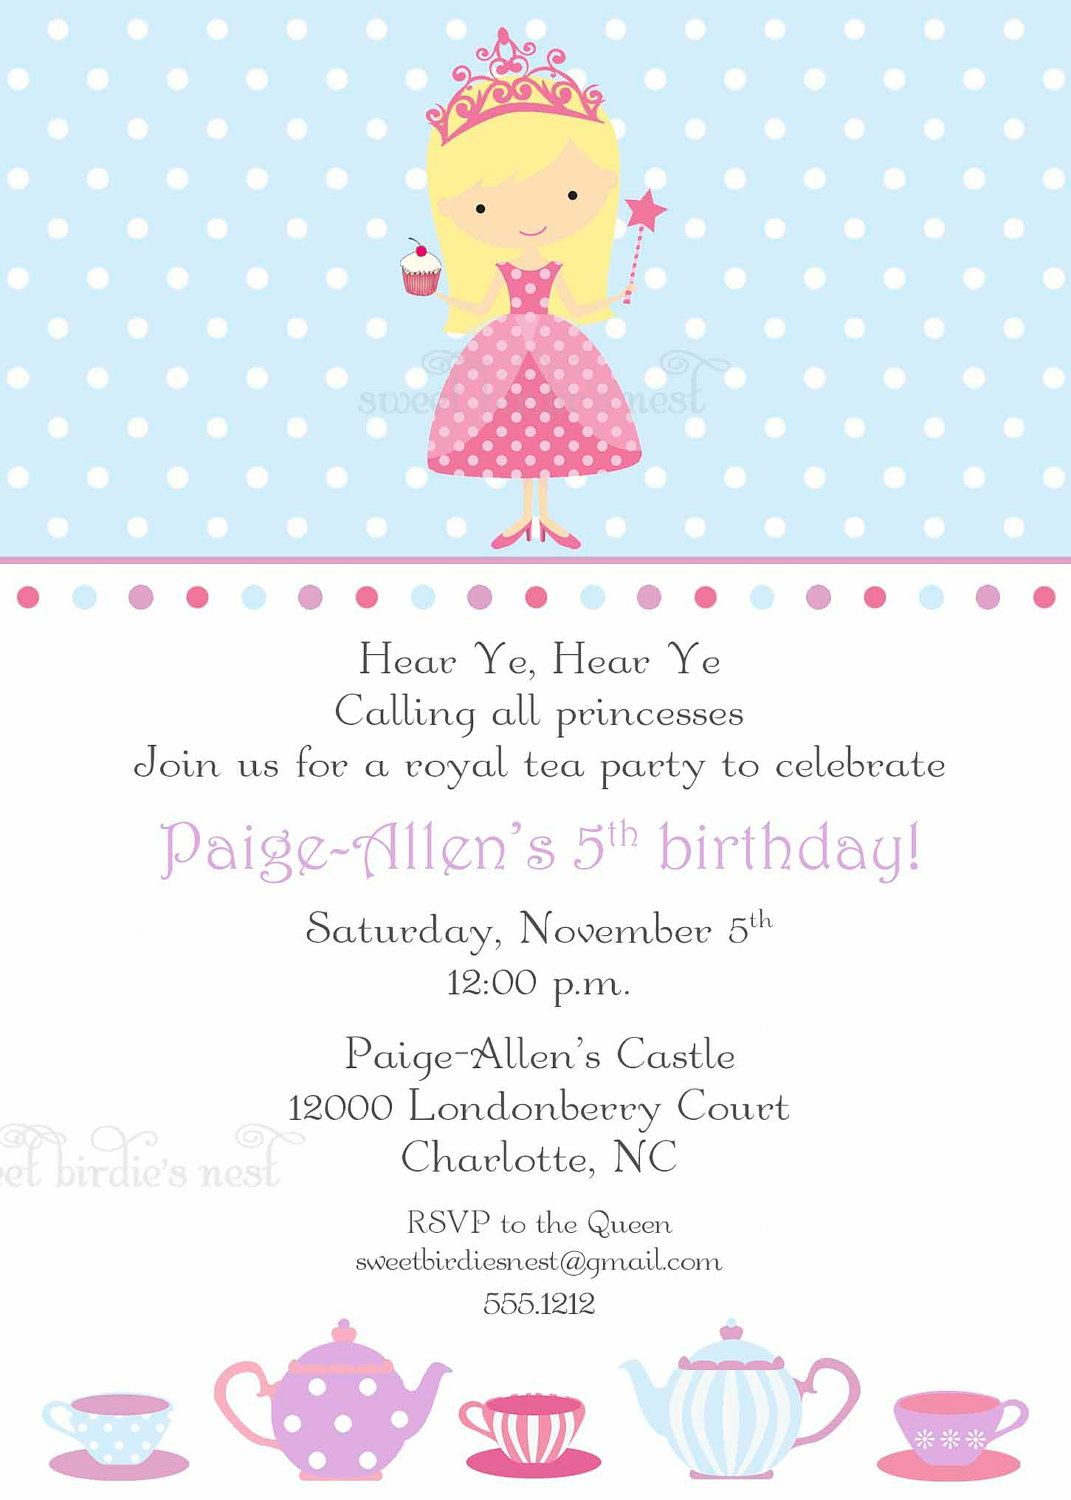 princess themed birthday party invitation wording ; a7e0f2bed7e4f33d6ec9f59eae13eed2